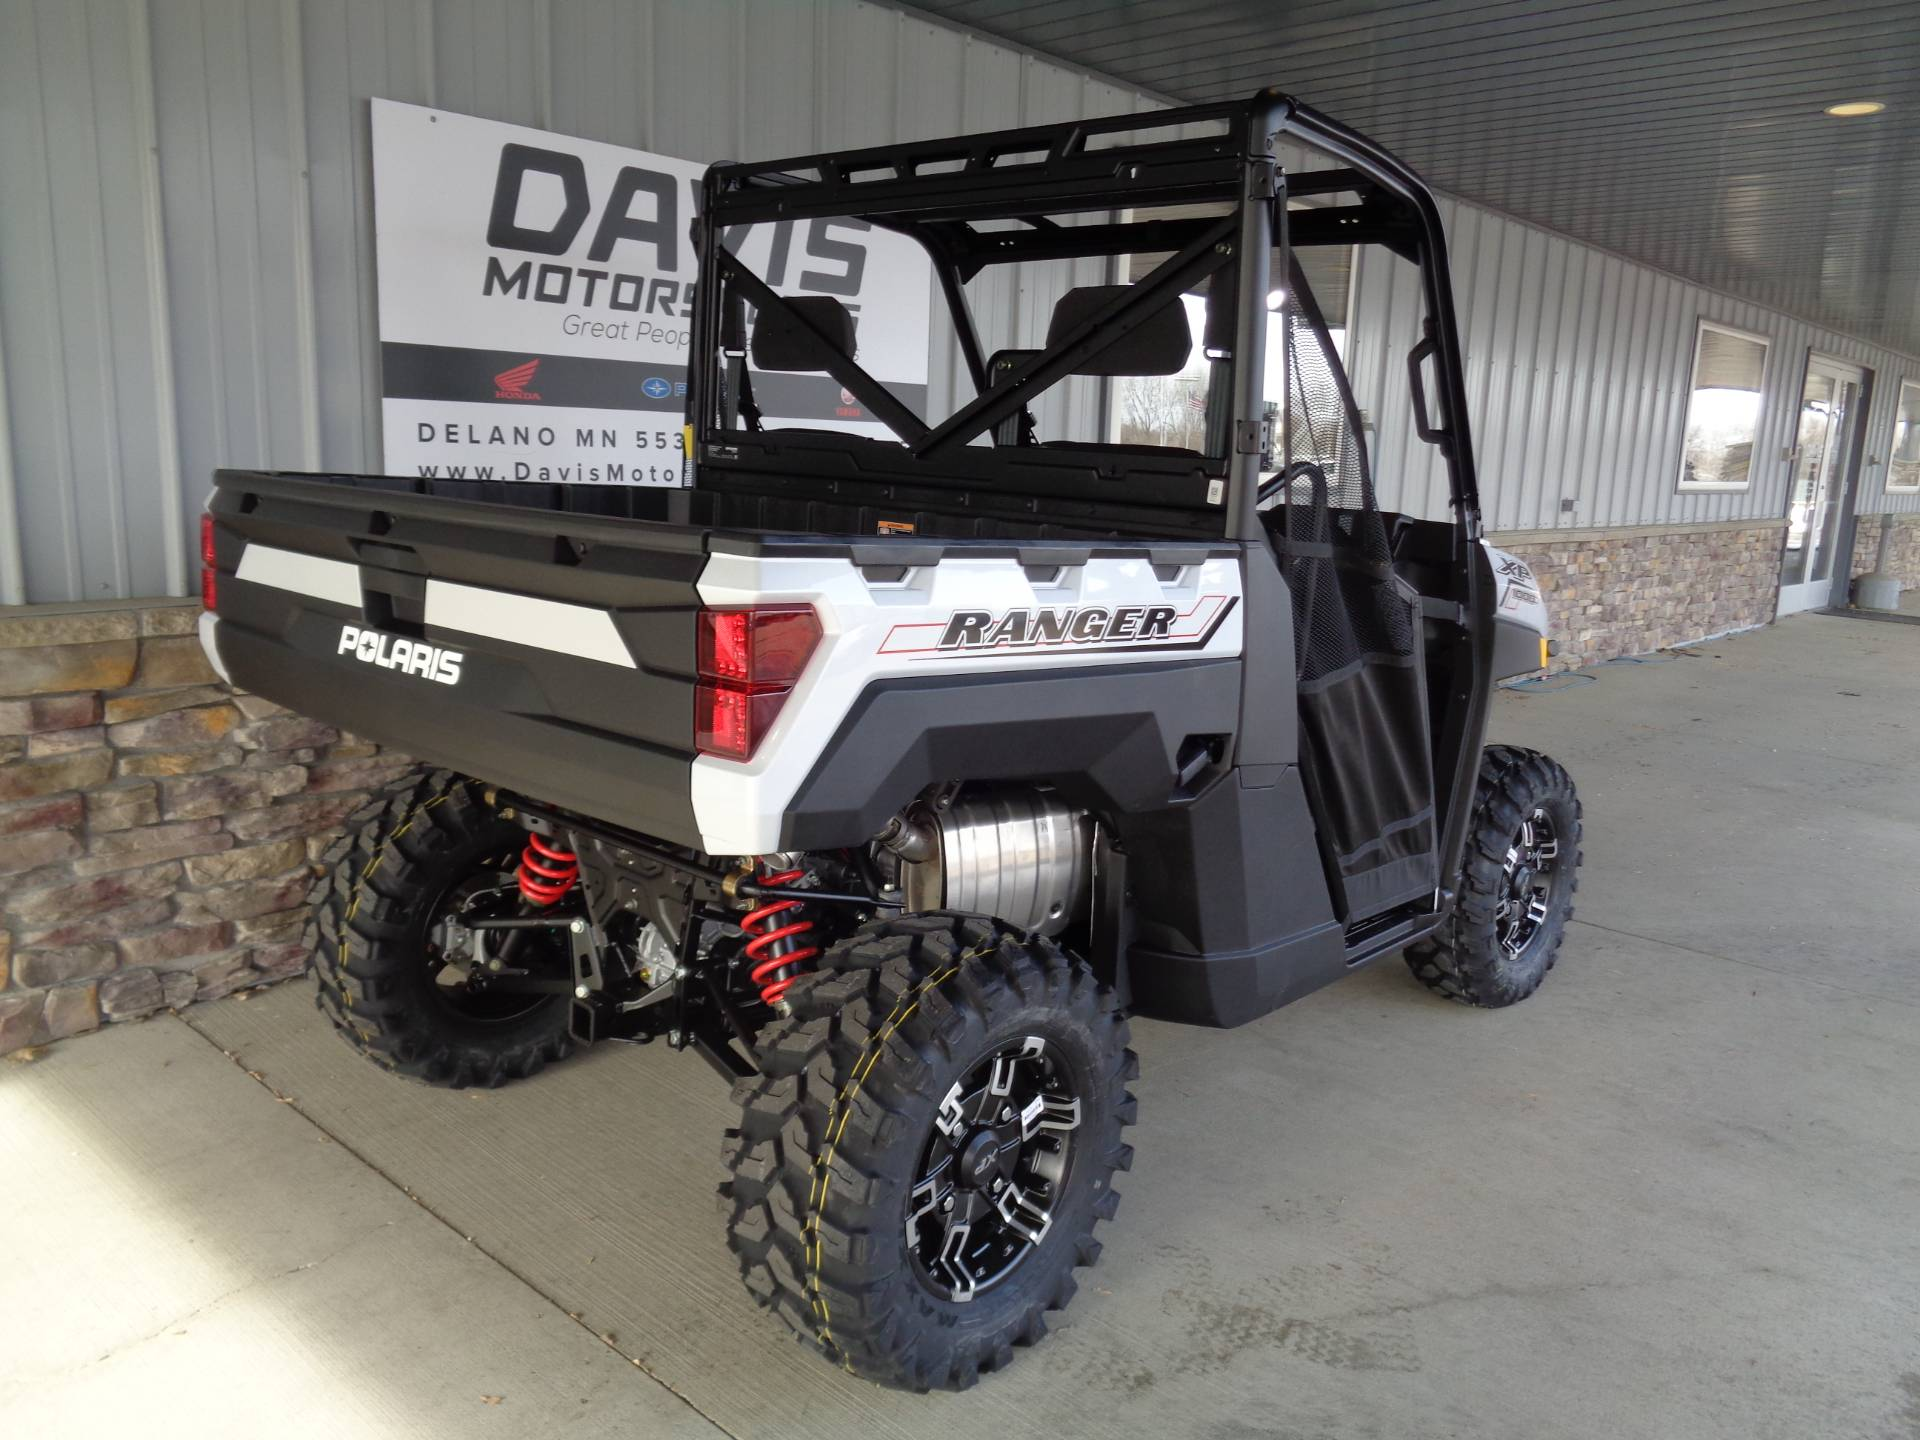 2021 Polaris Ranger XP 1000 Premium in Delano, Minnesota - Photo 5